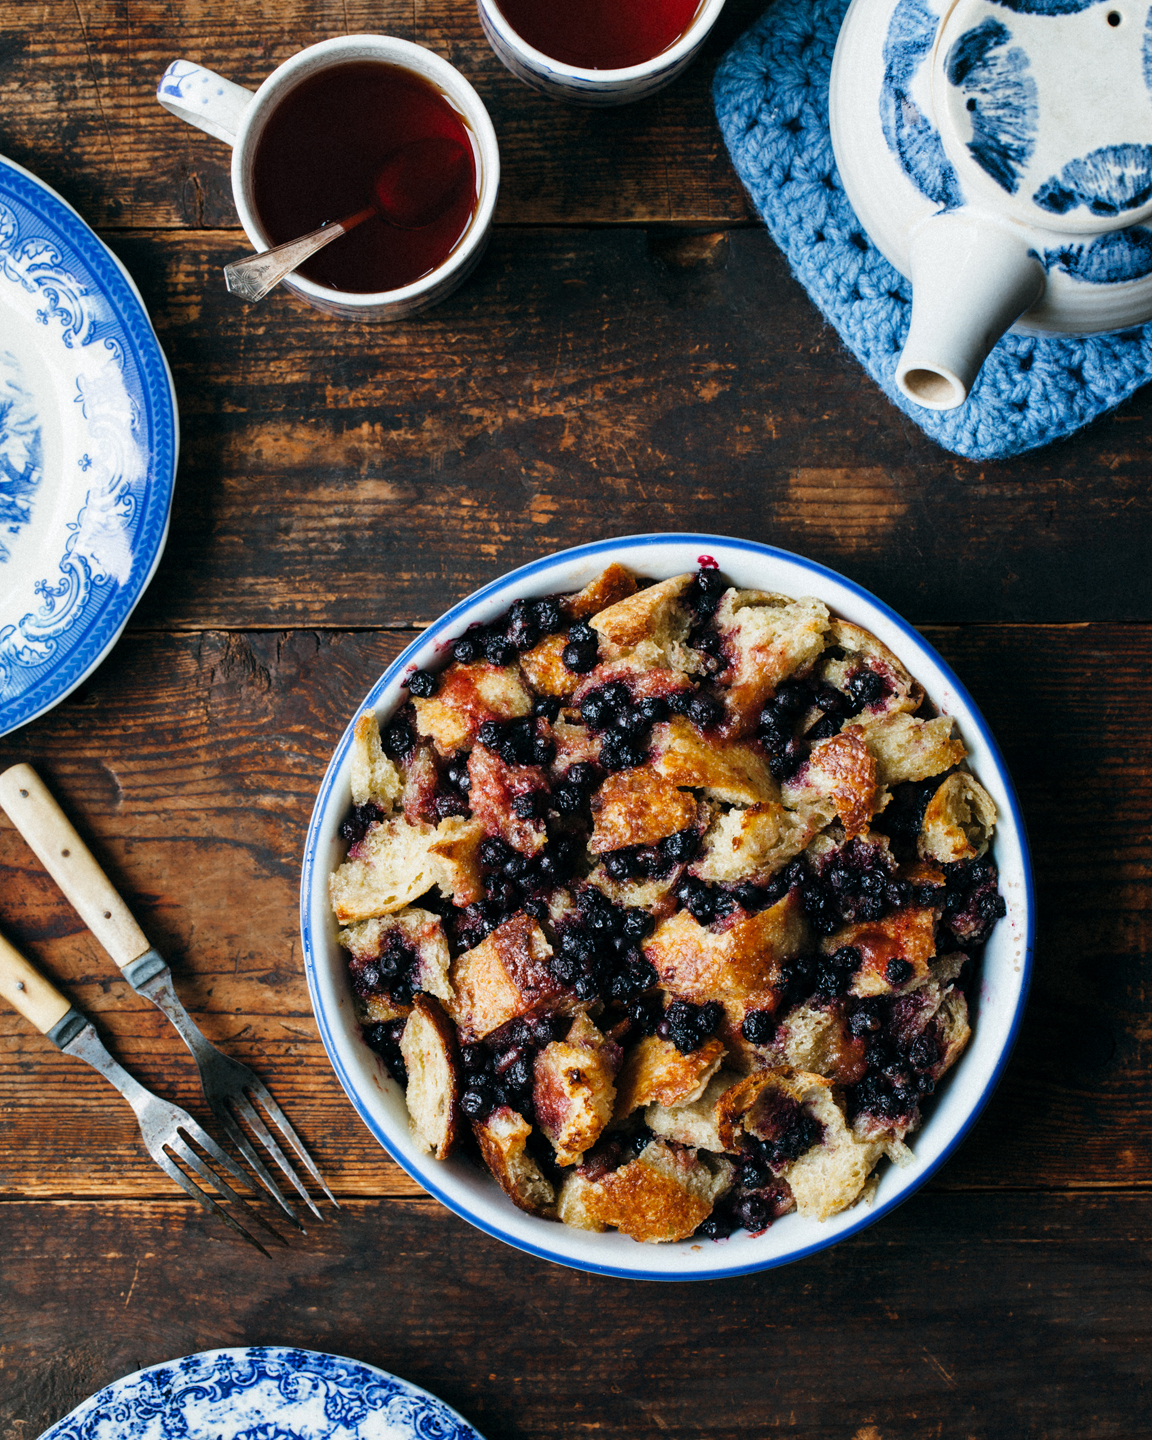 Sourdough Bread Pudding With Tea Wild Blueberries Egg Free Baked